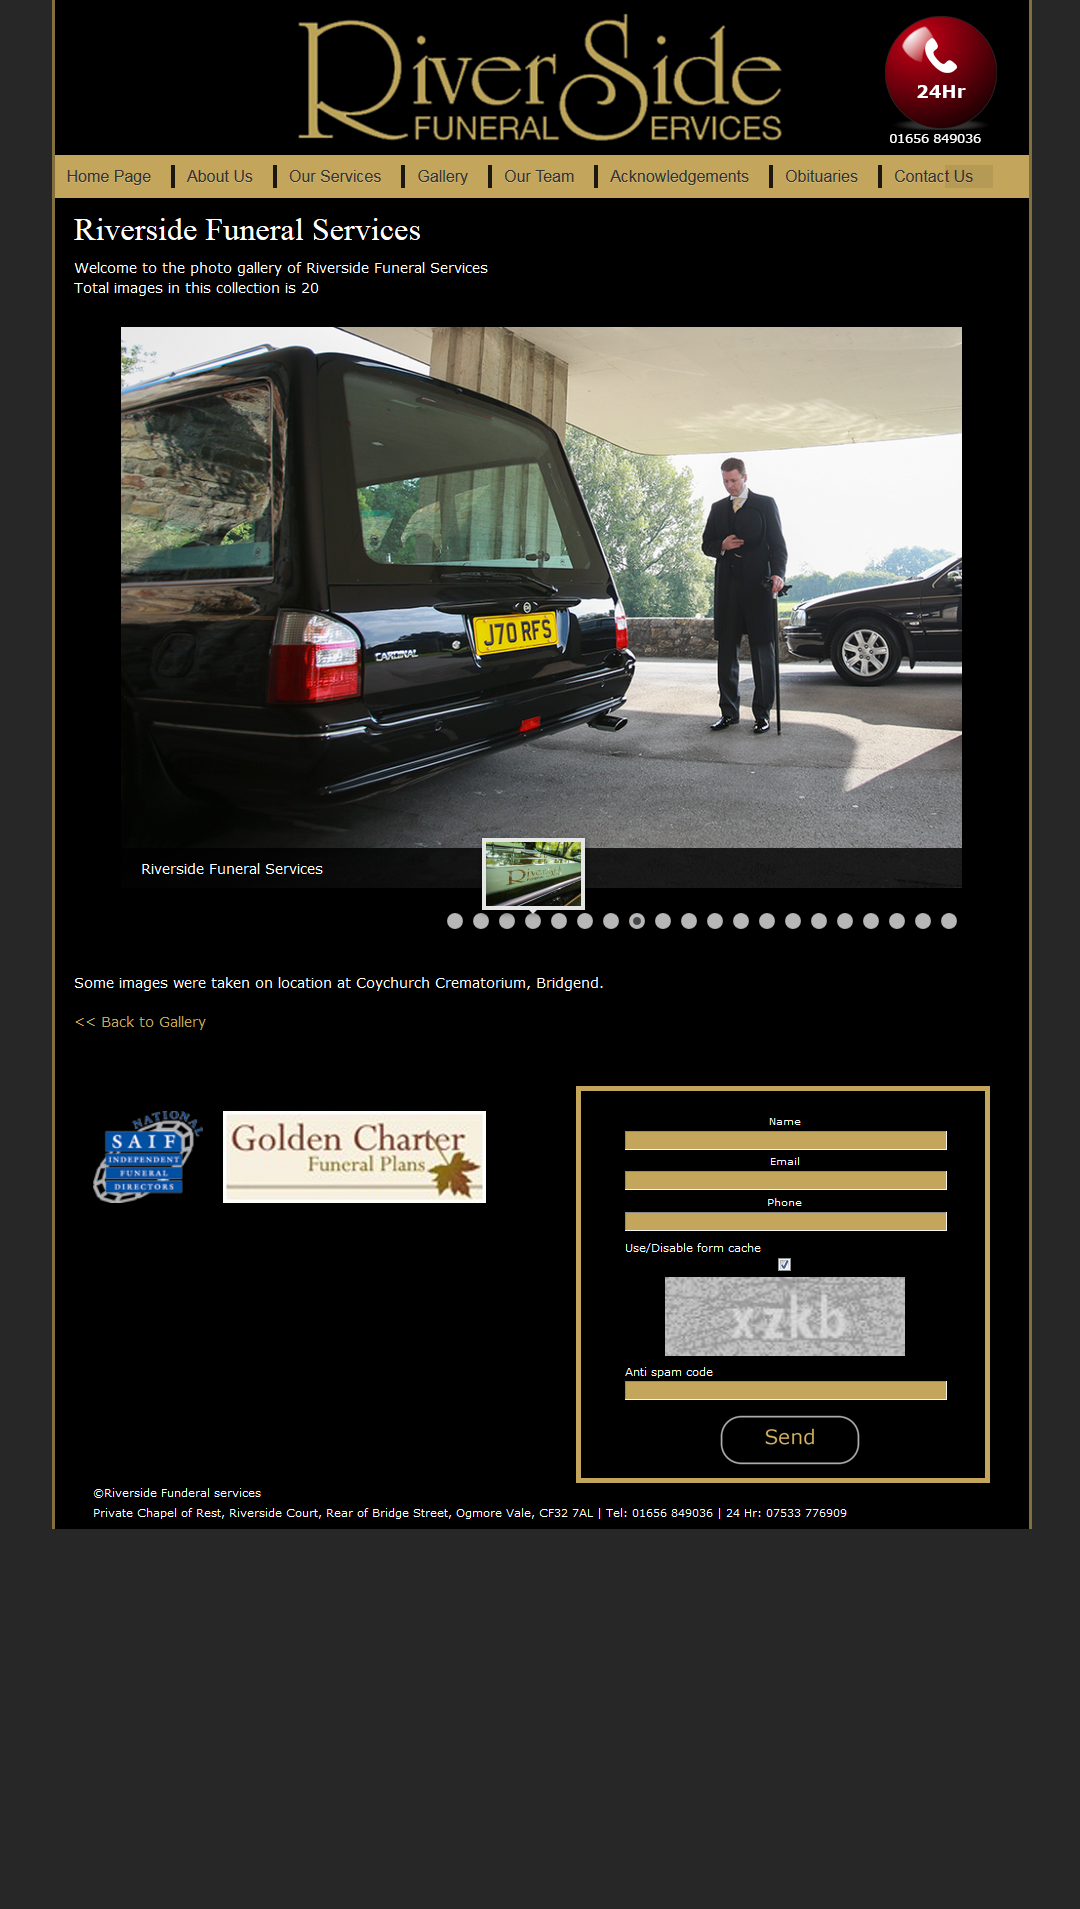 An image from Riverside Funeral Services Website